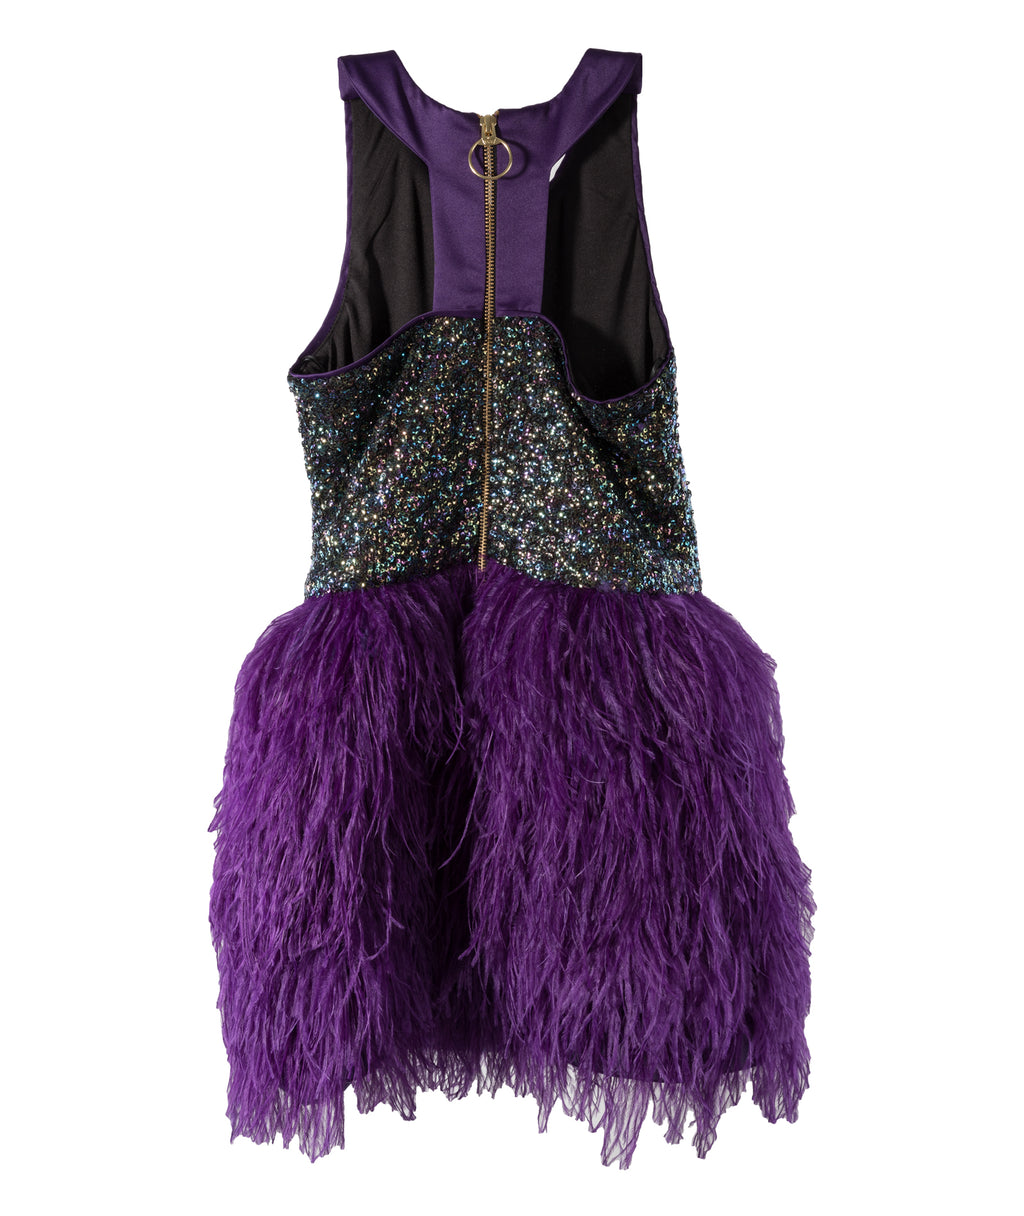 Zoe Ltd. Girls Purple Sequin Feather Dress